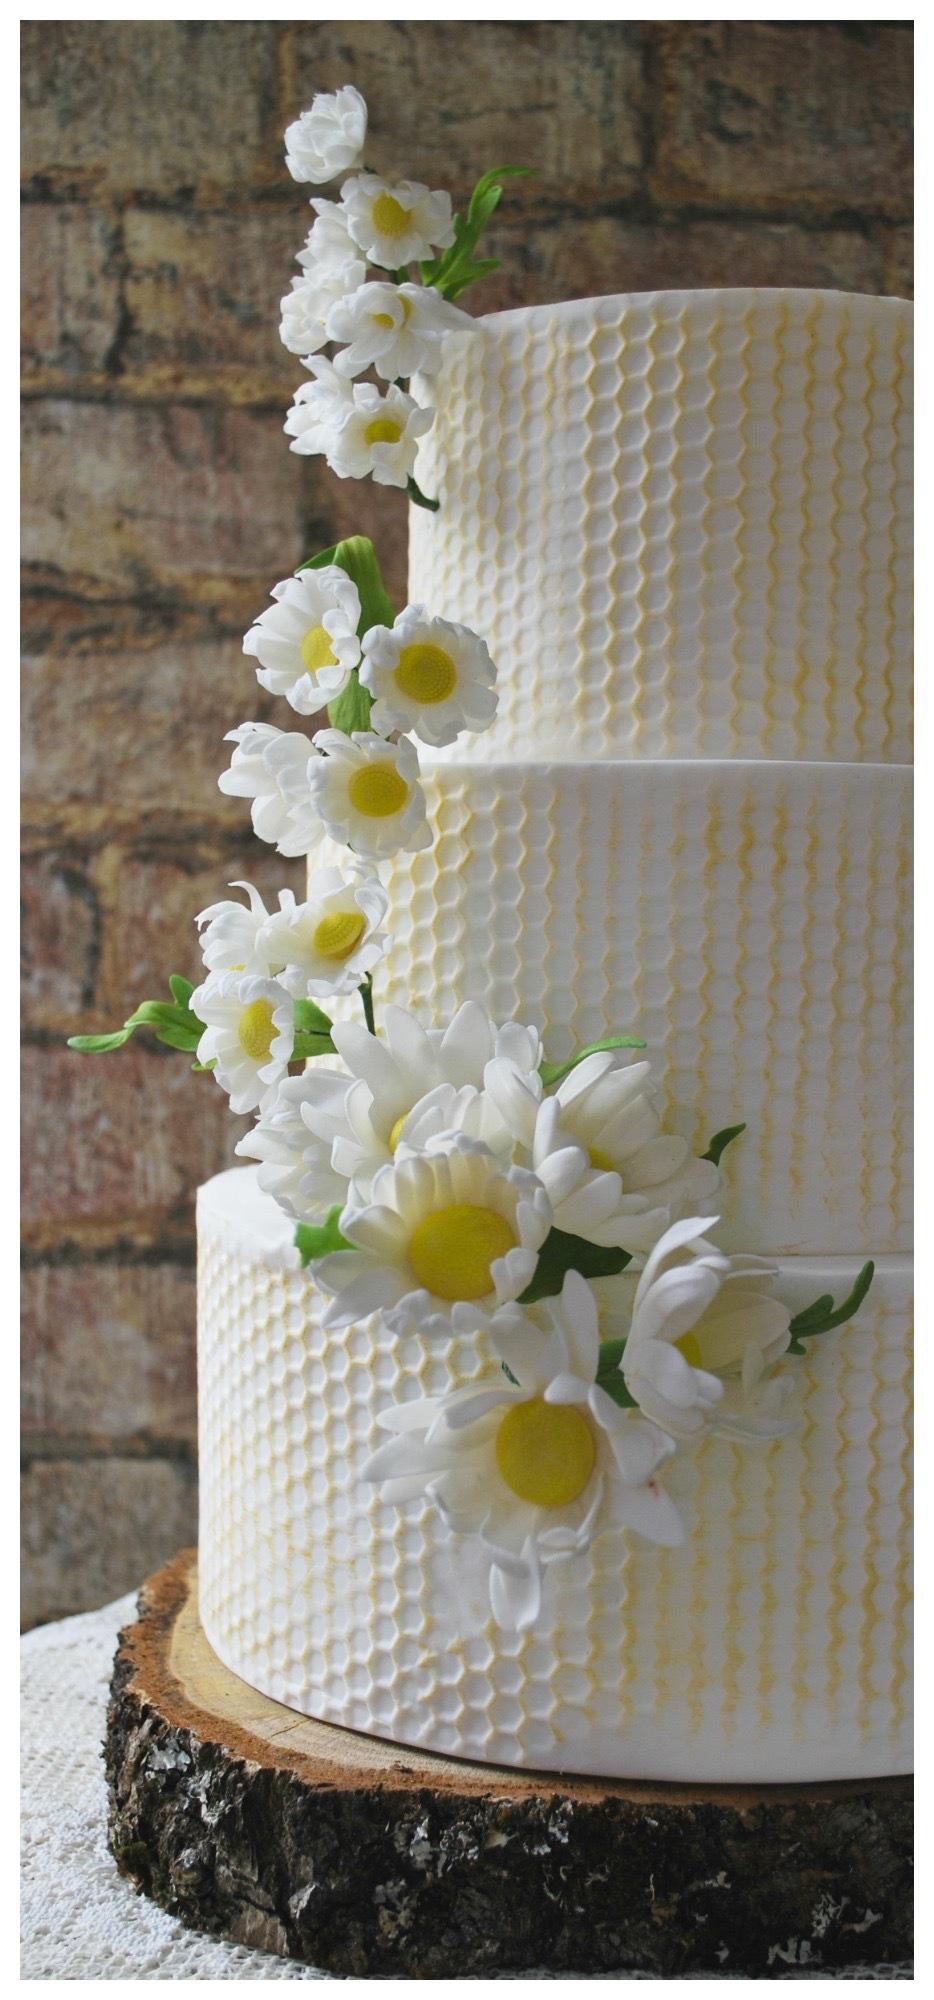 White textured  fondant wedding cake with yellow honeycomb patterned wedding